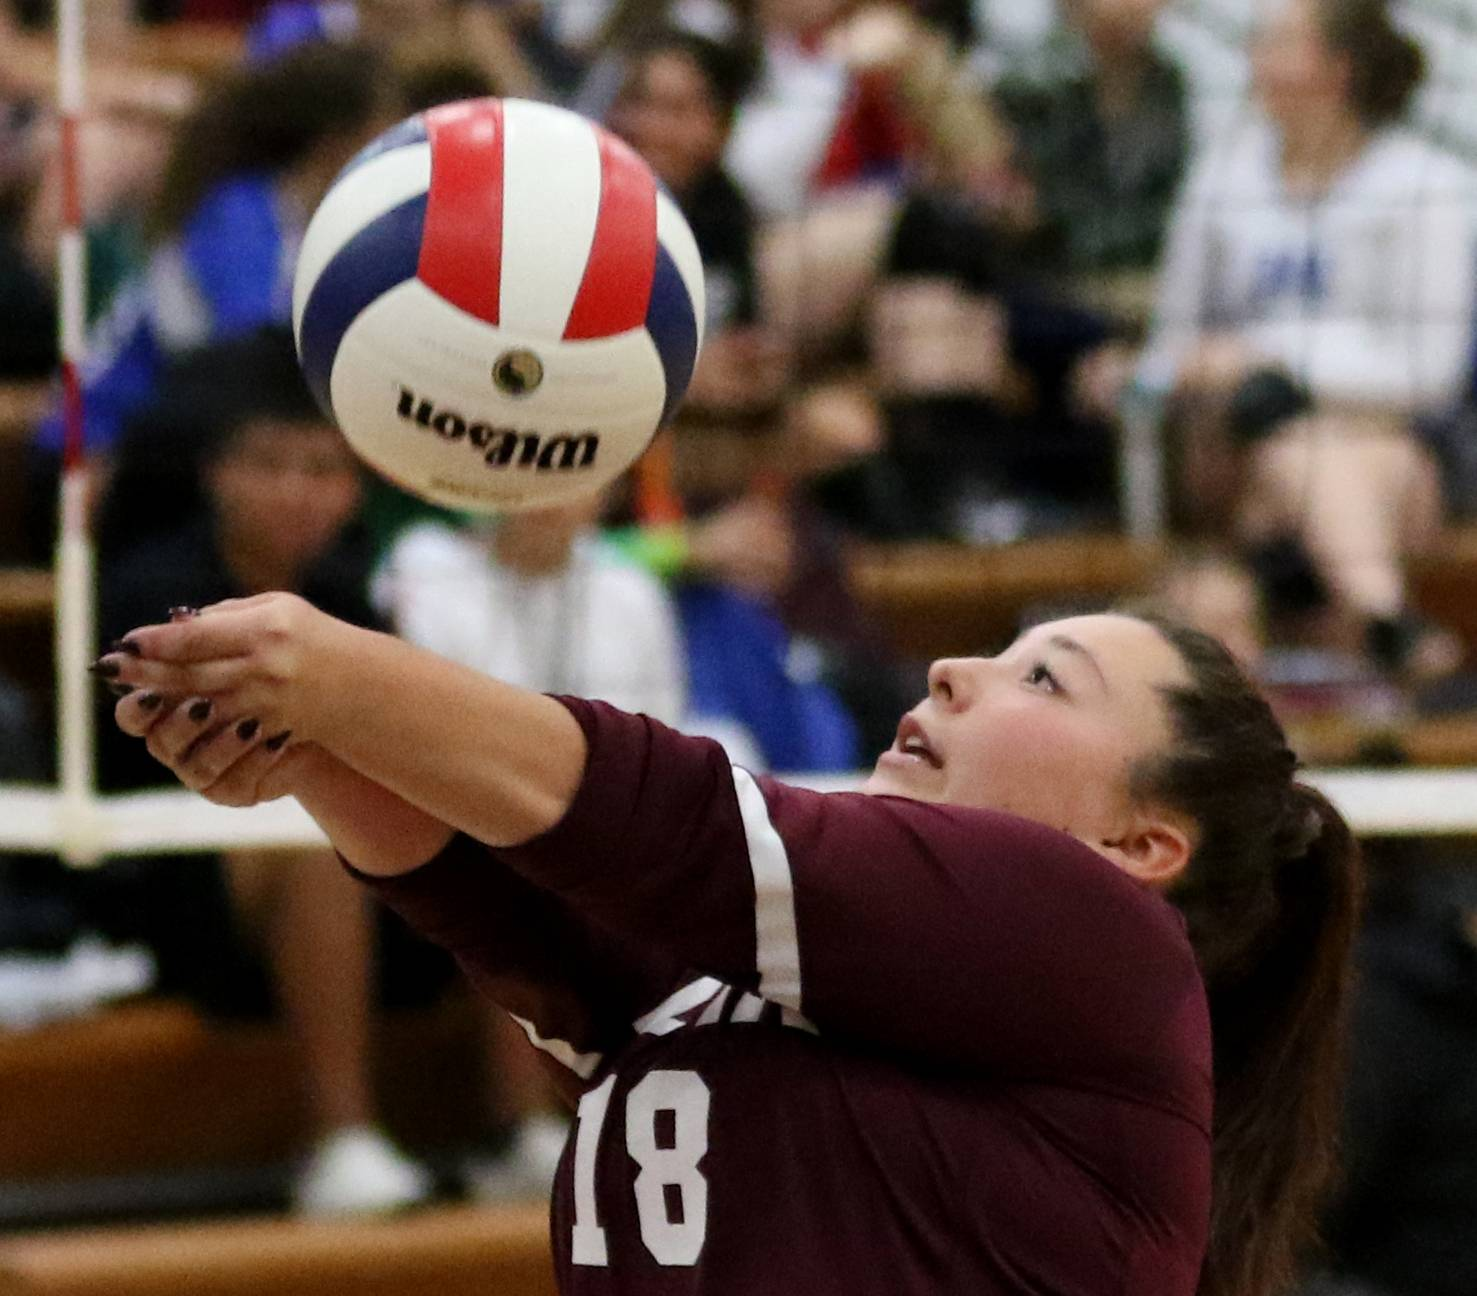 Elgin's Cory Zapata passes the ball in varsity girls volleyball at Larkin on Wednesday.